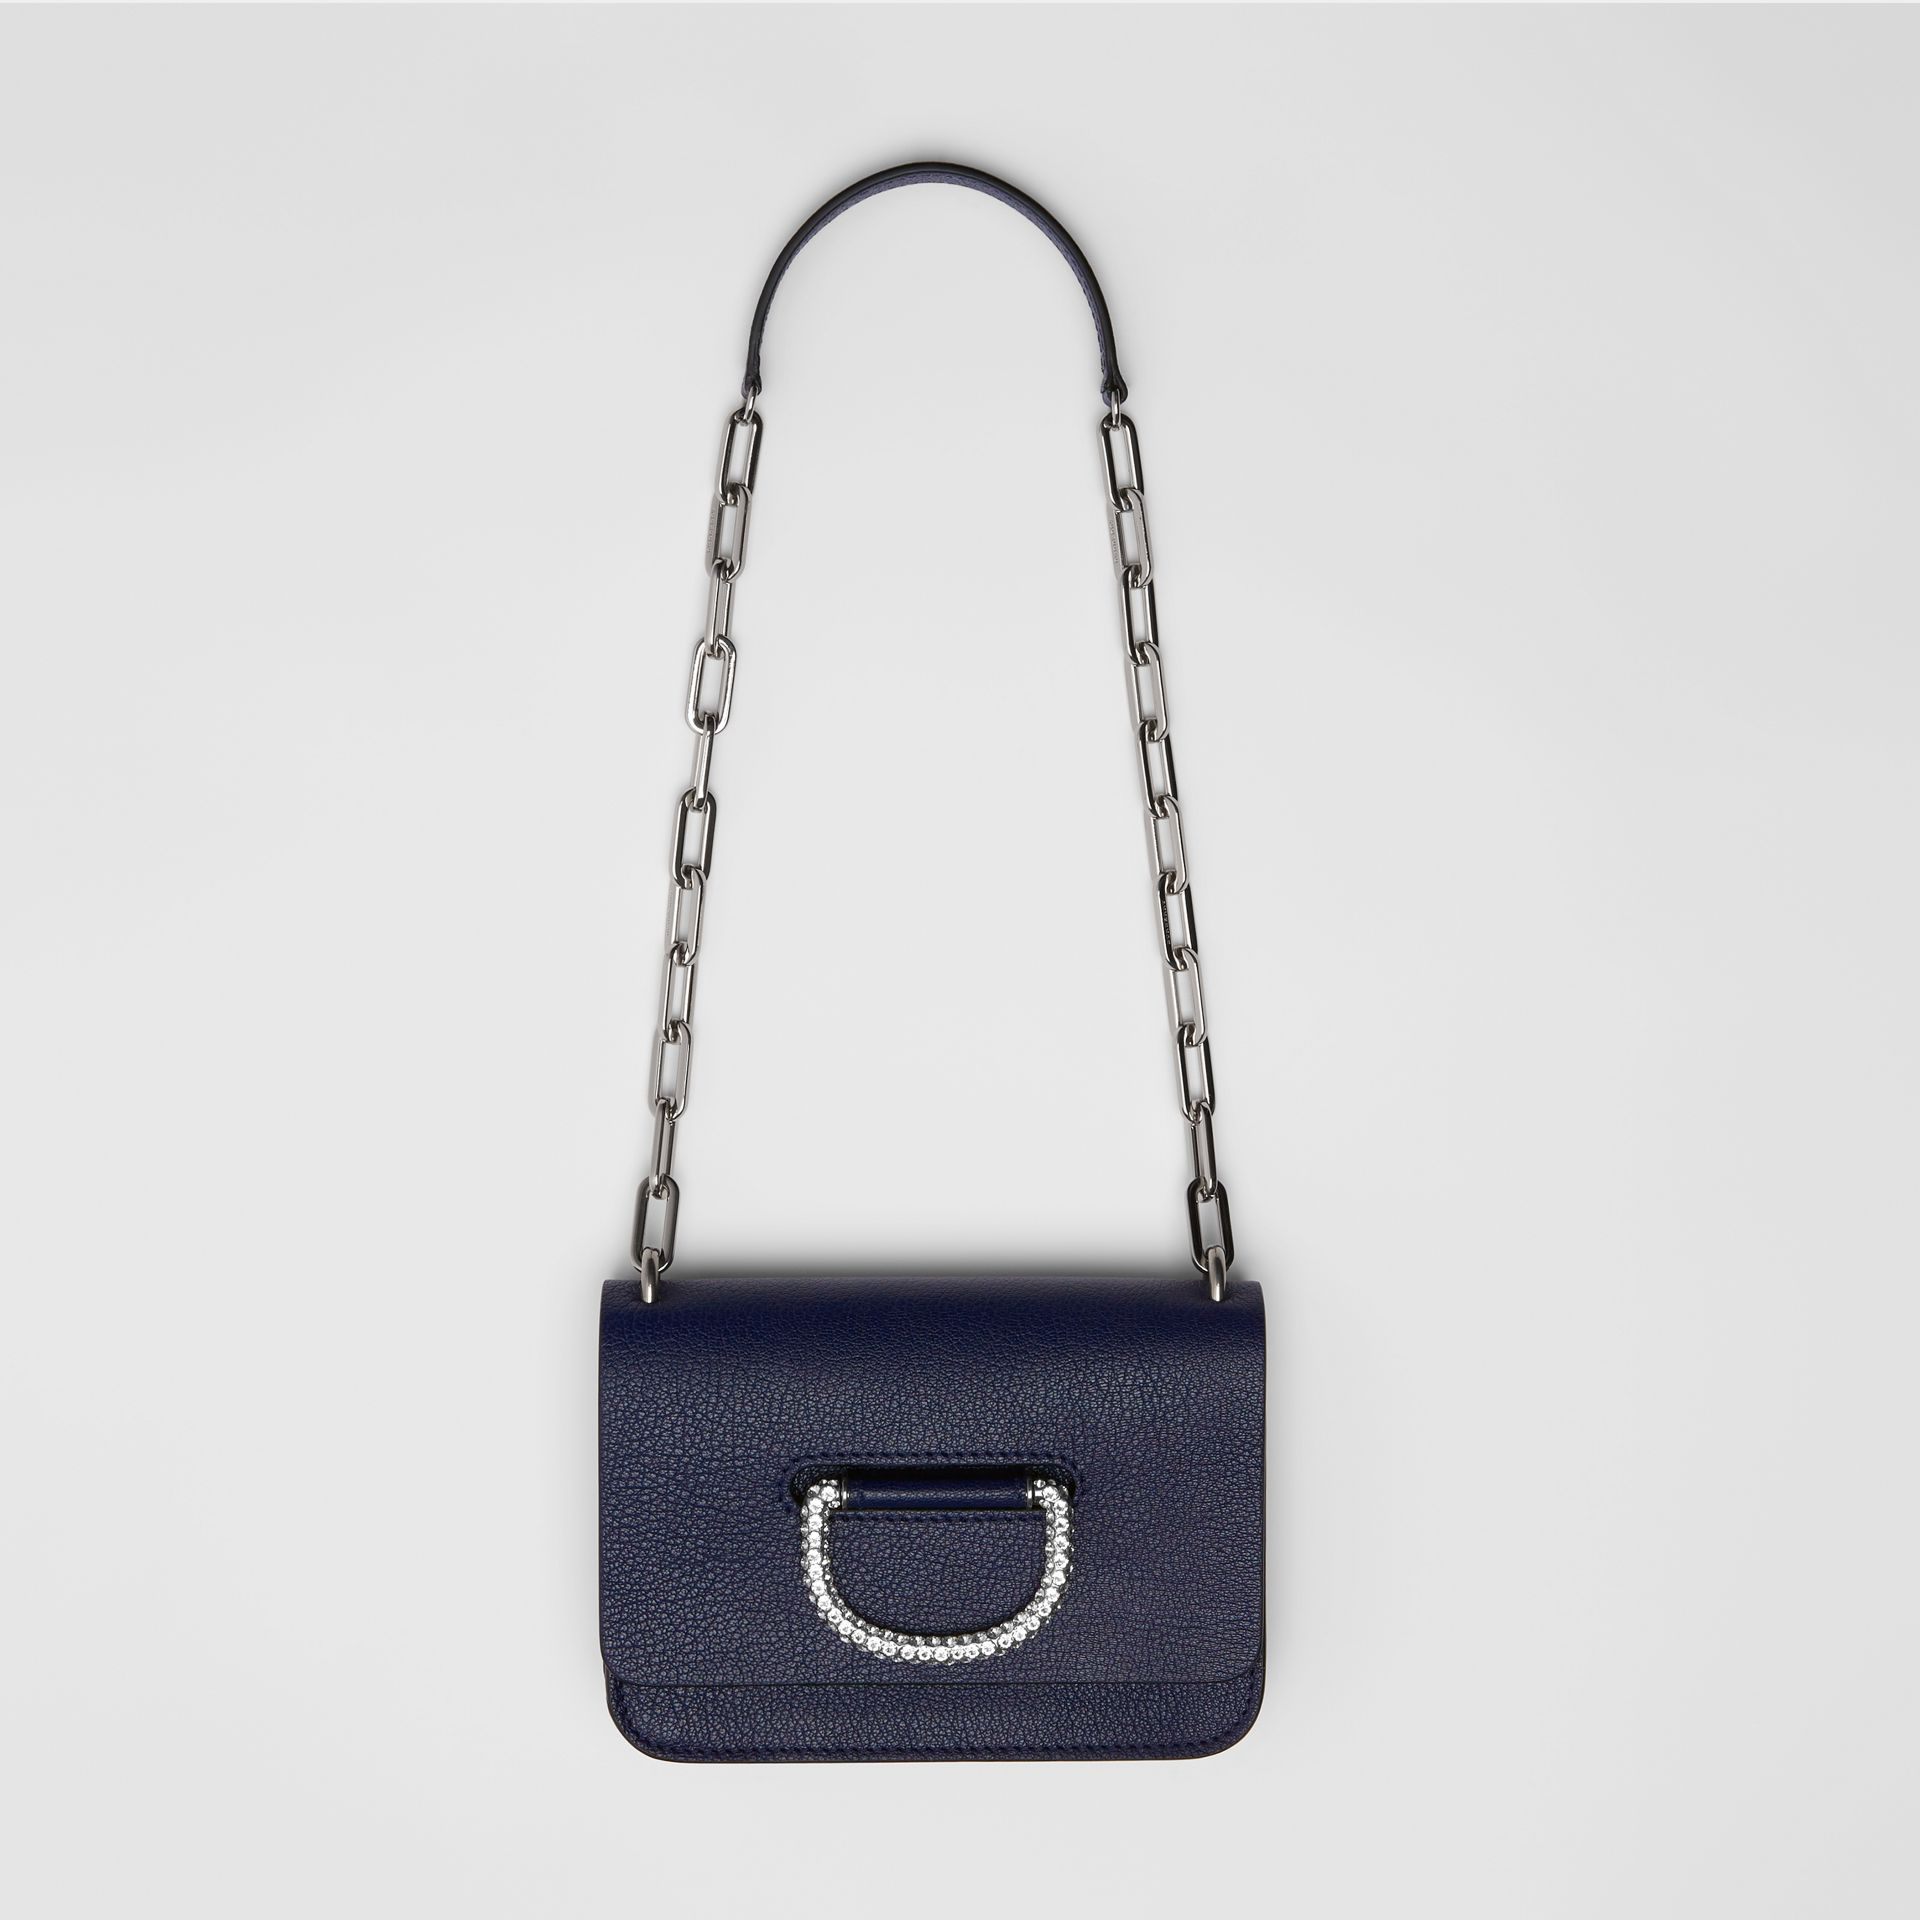 Mini sac The D-ring en cuir avec cristaux (Bleu Régence) - Femme | Burberry Canada - photo de la galerie 2